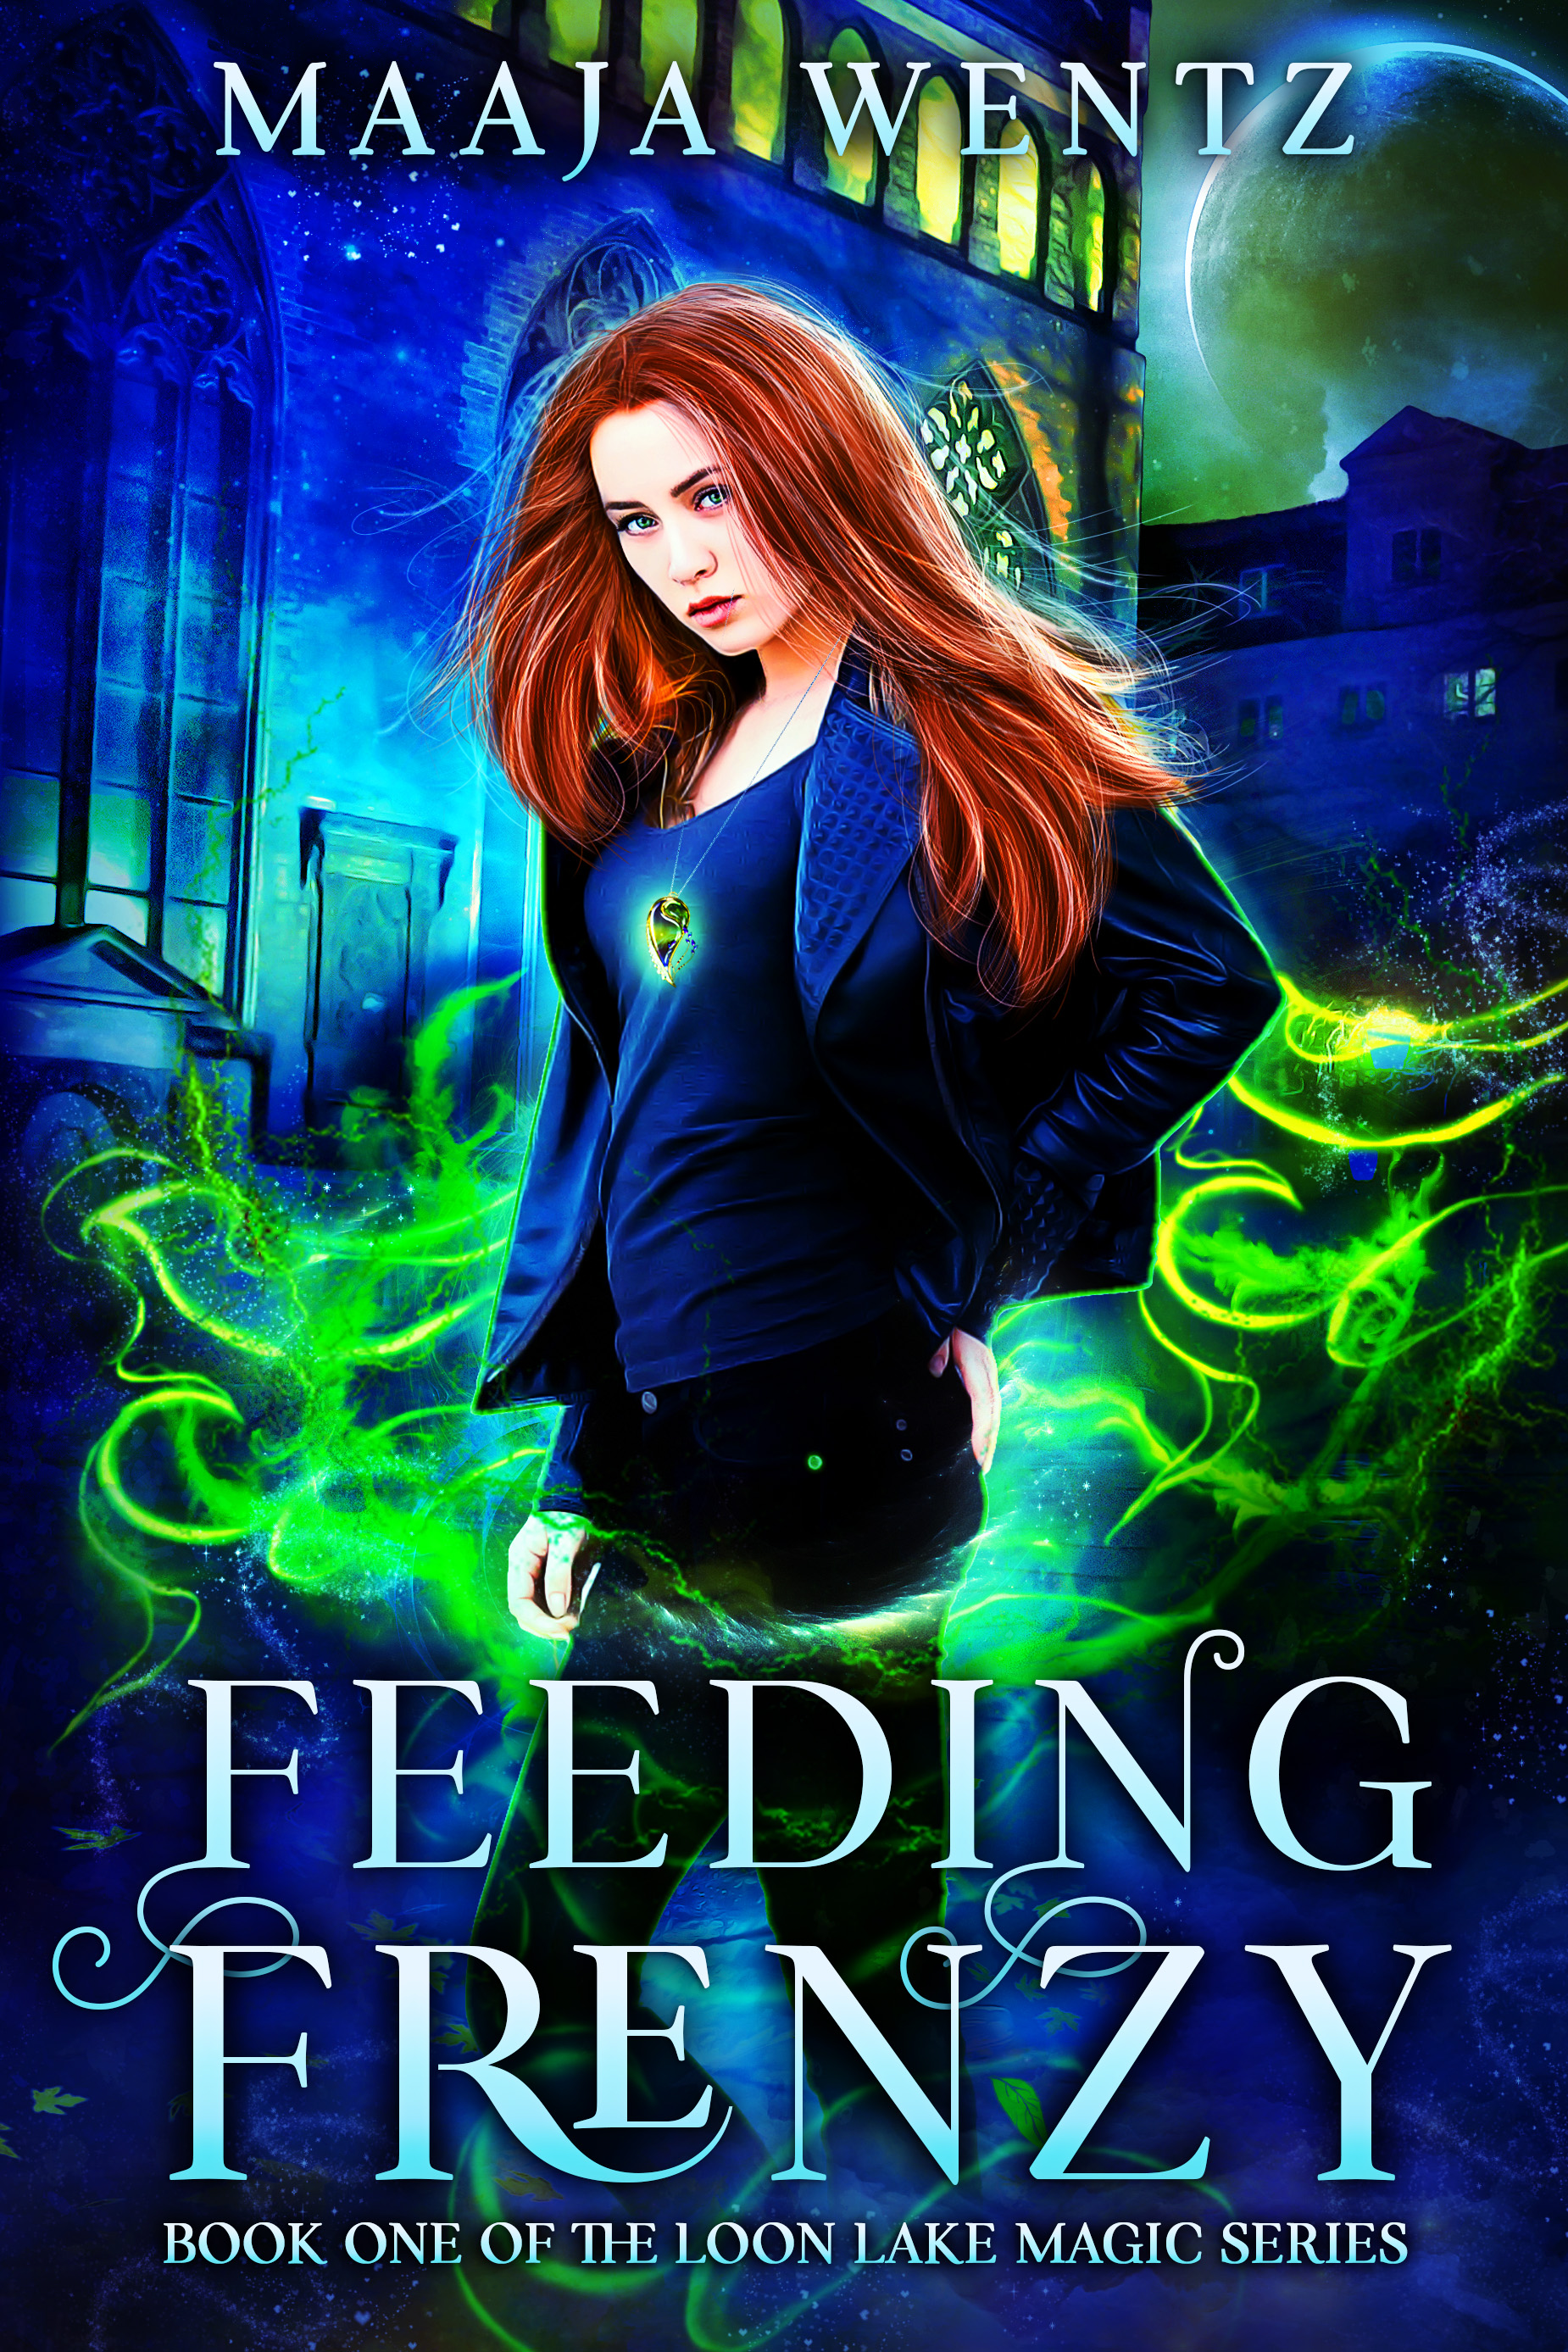 Feeding Frenzy by Maaja Wentz